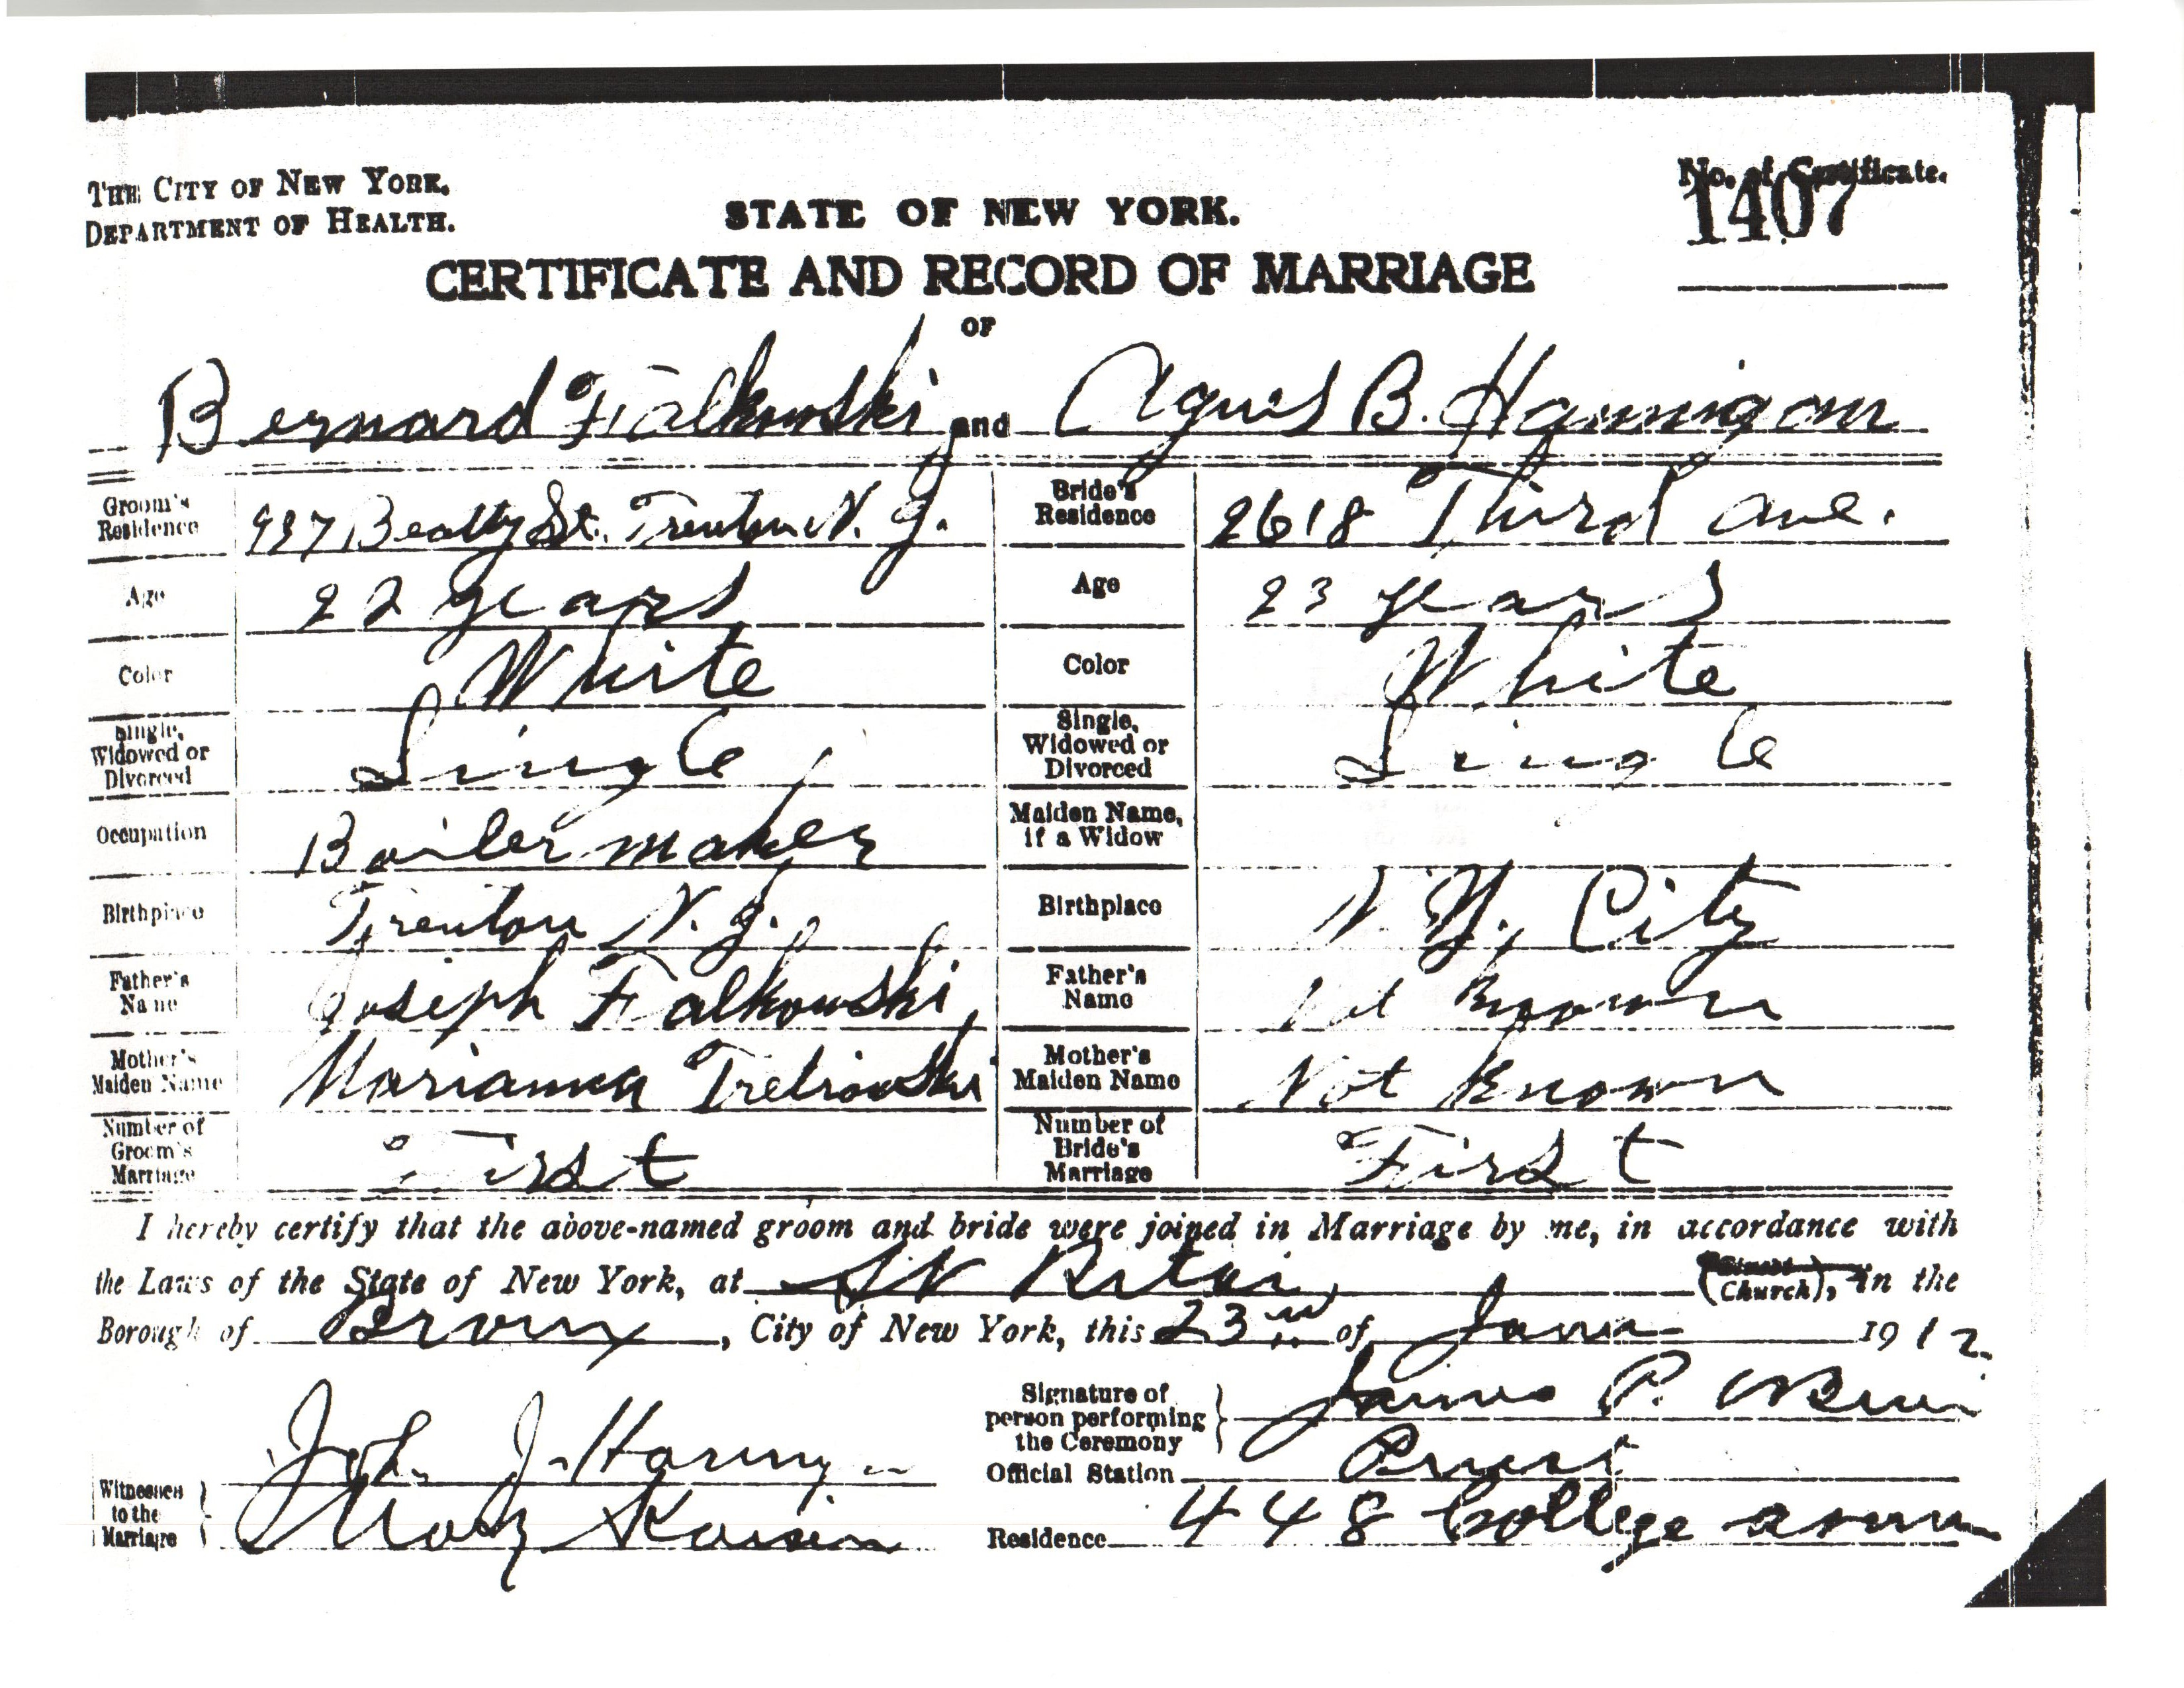 State of New York, Certificate and Record of Marriage of Bernard Falkowski and Agnes B Hannigan